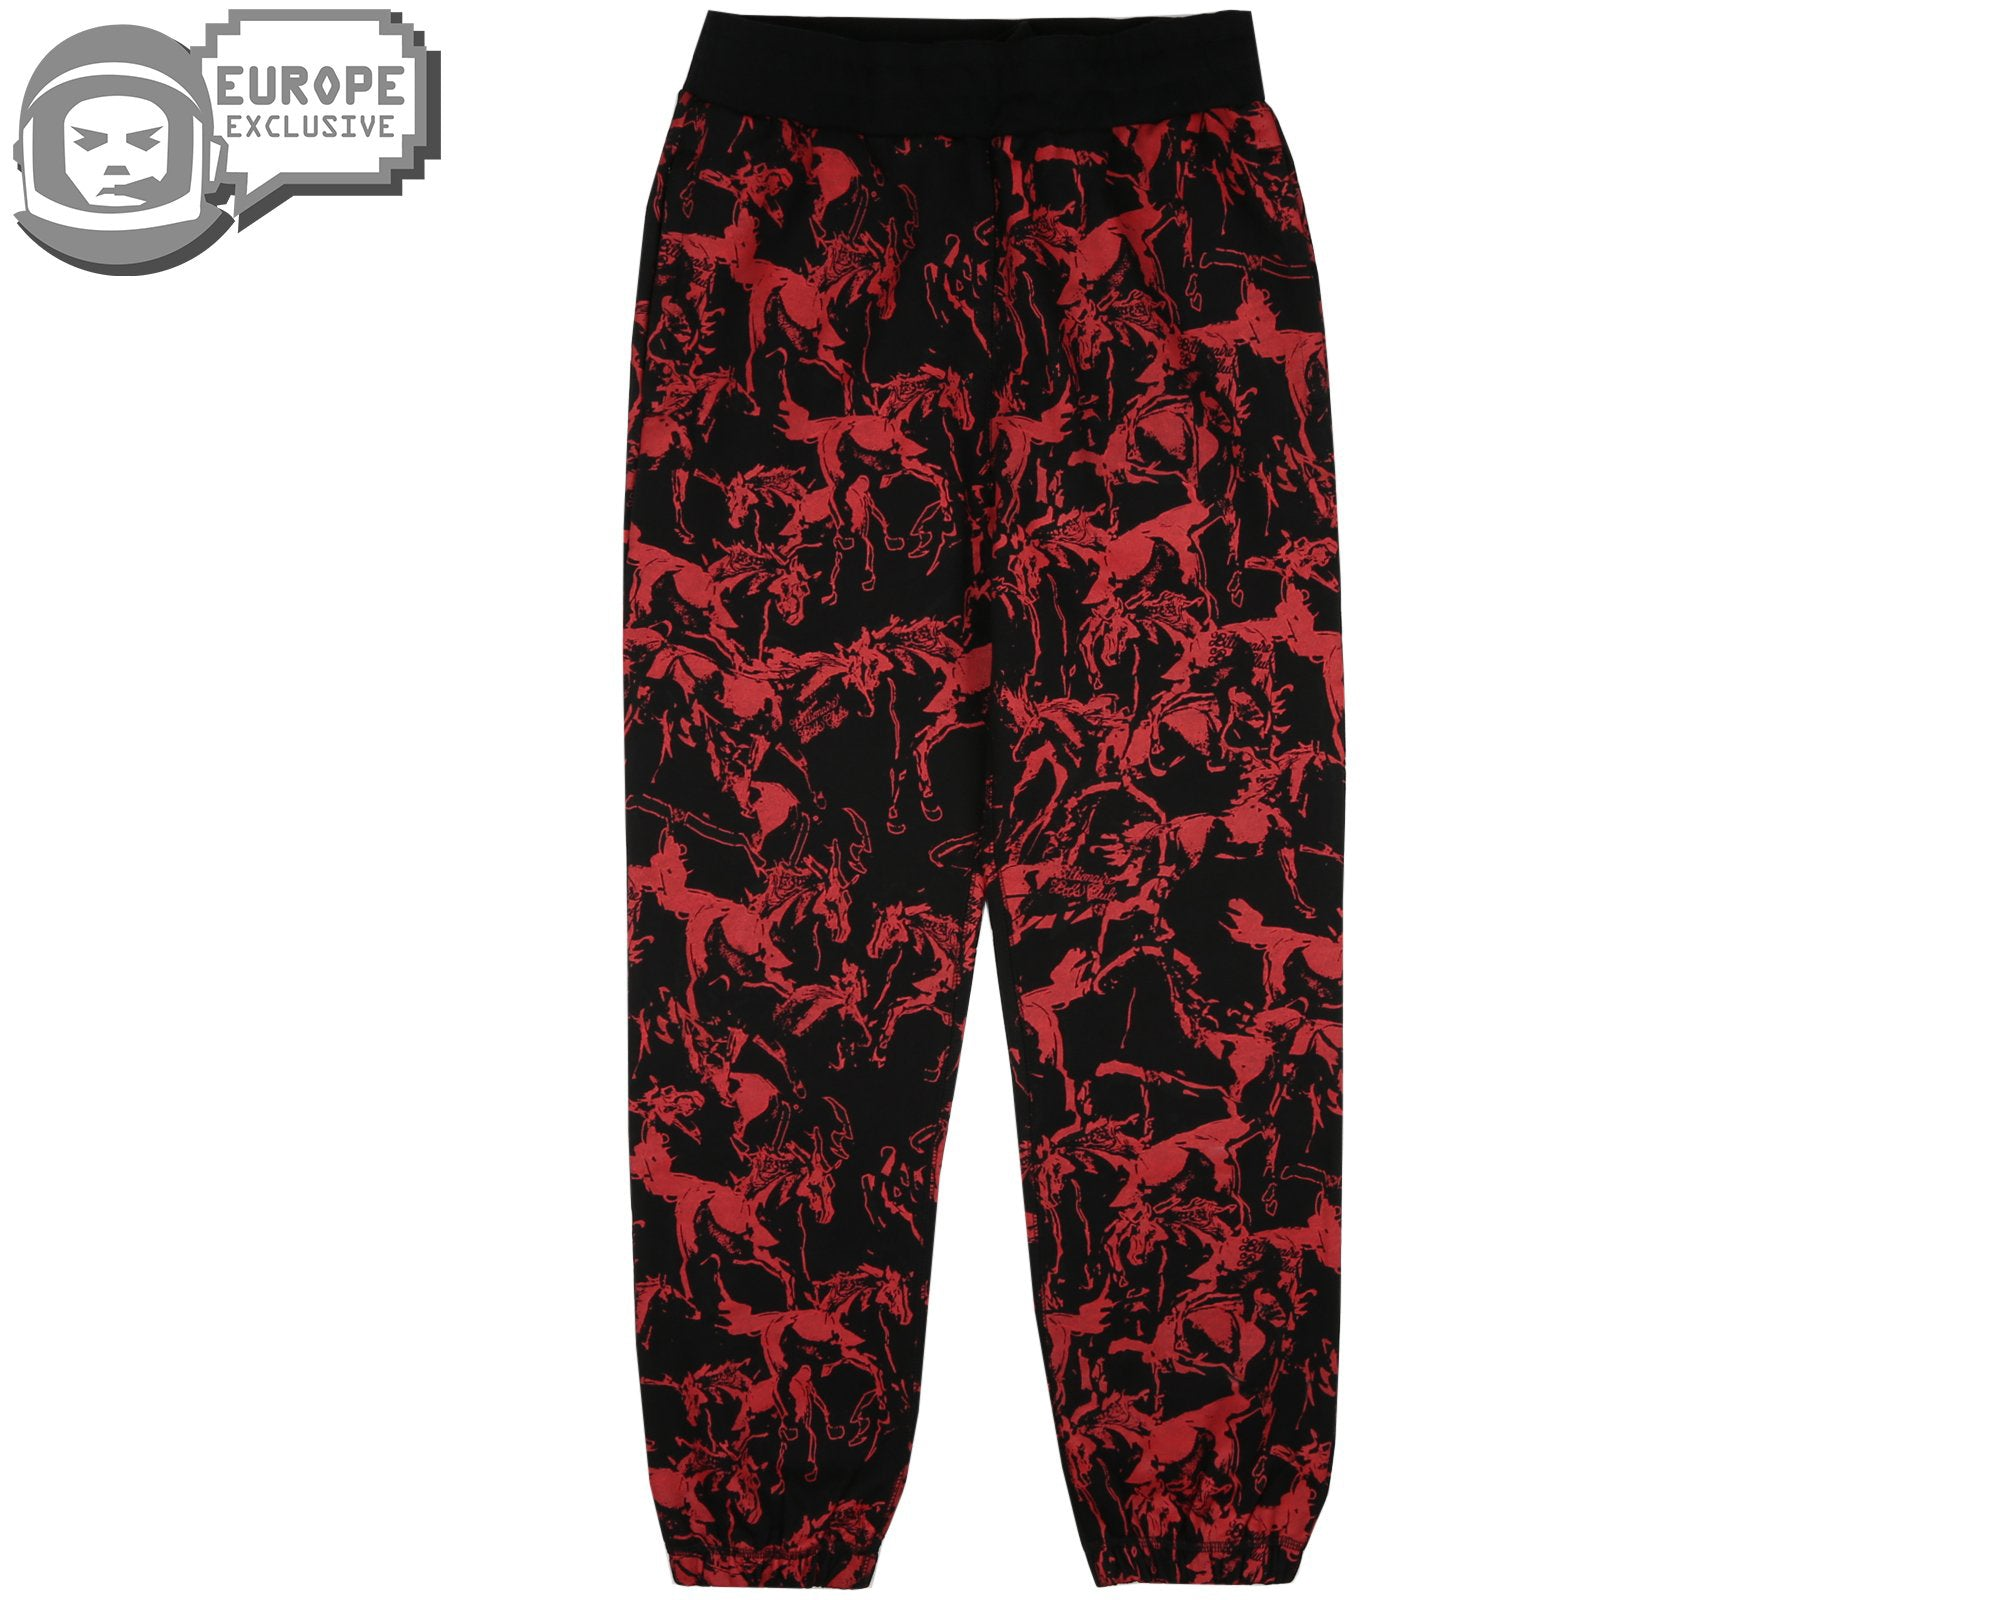 HORSEPOWER SWEATPANT - BLACK